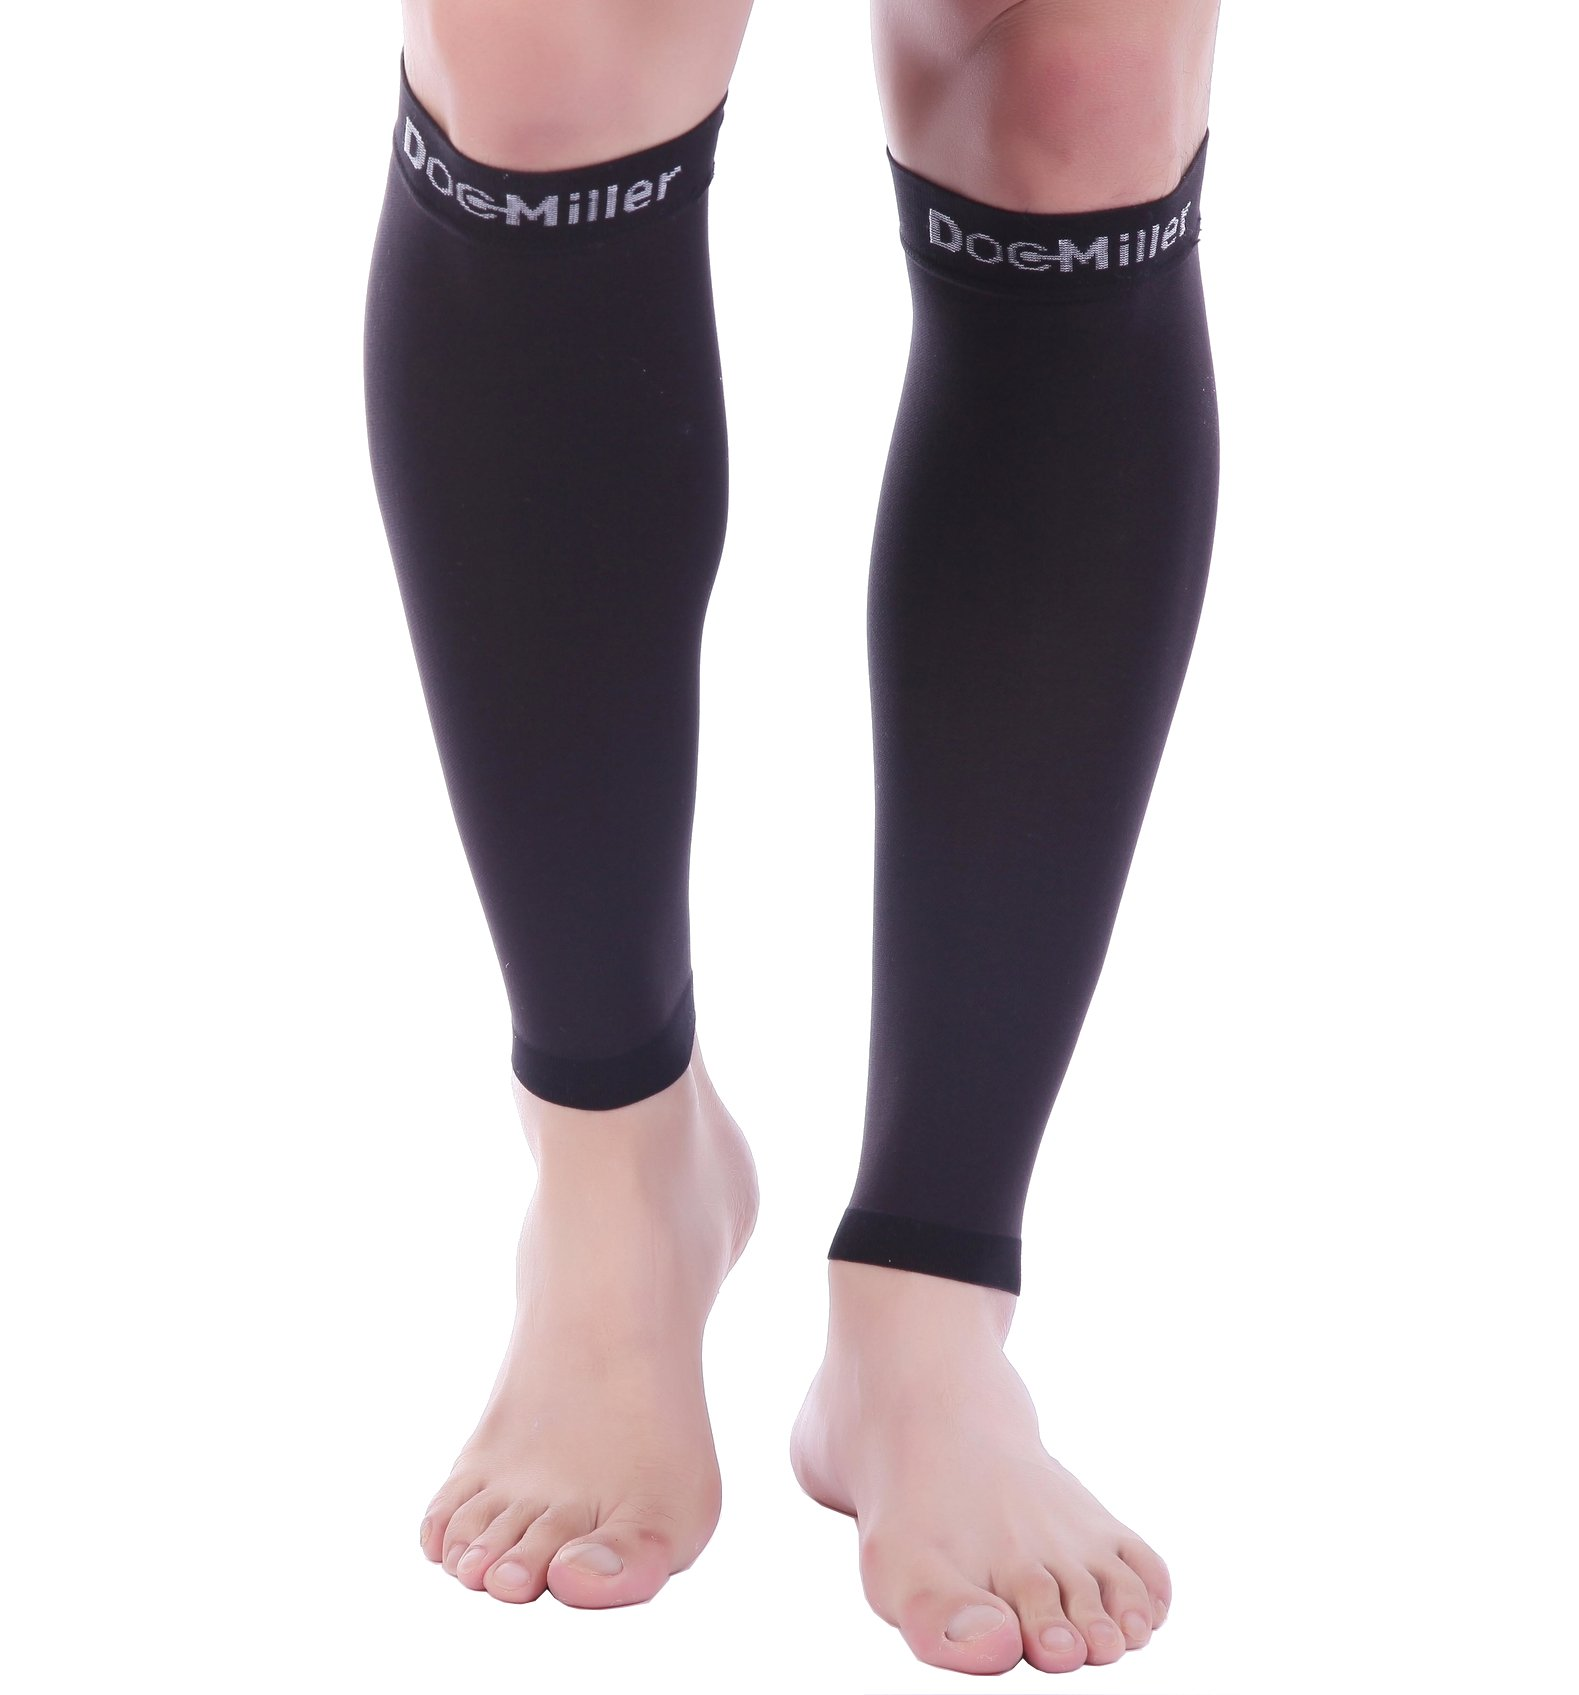 Doc Miller Premium Calf Compression Sleeve 1 Pair 20-30mmHg Strong Calf Support Graduated Pressure for Sports Running Muscle Recovery Shin Splints Varicose Veins (Black Wide Ankle, 5X-Large) by Doc Miller